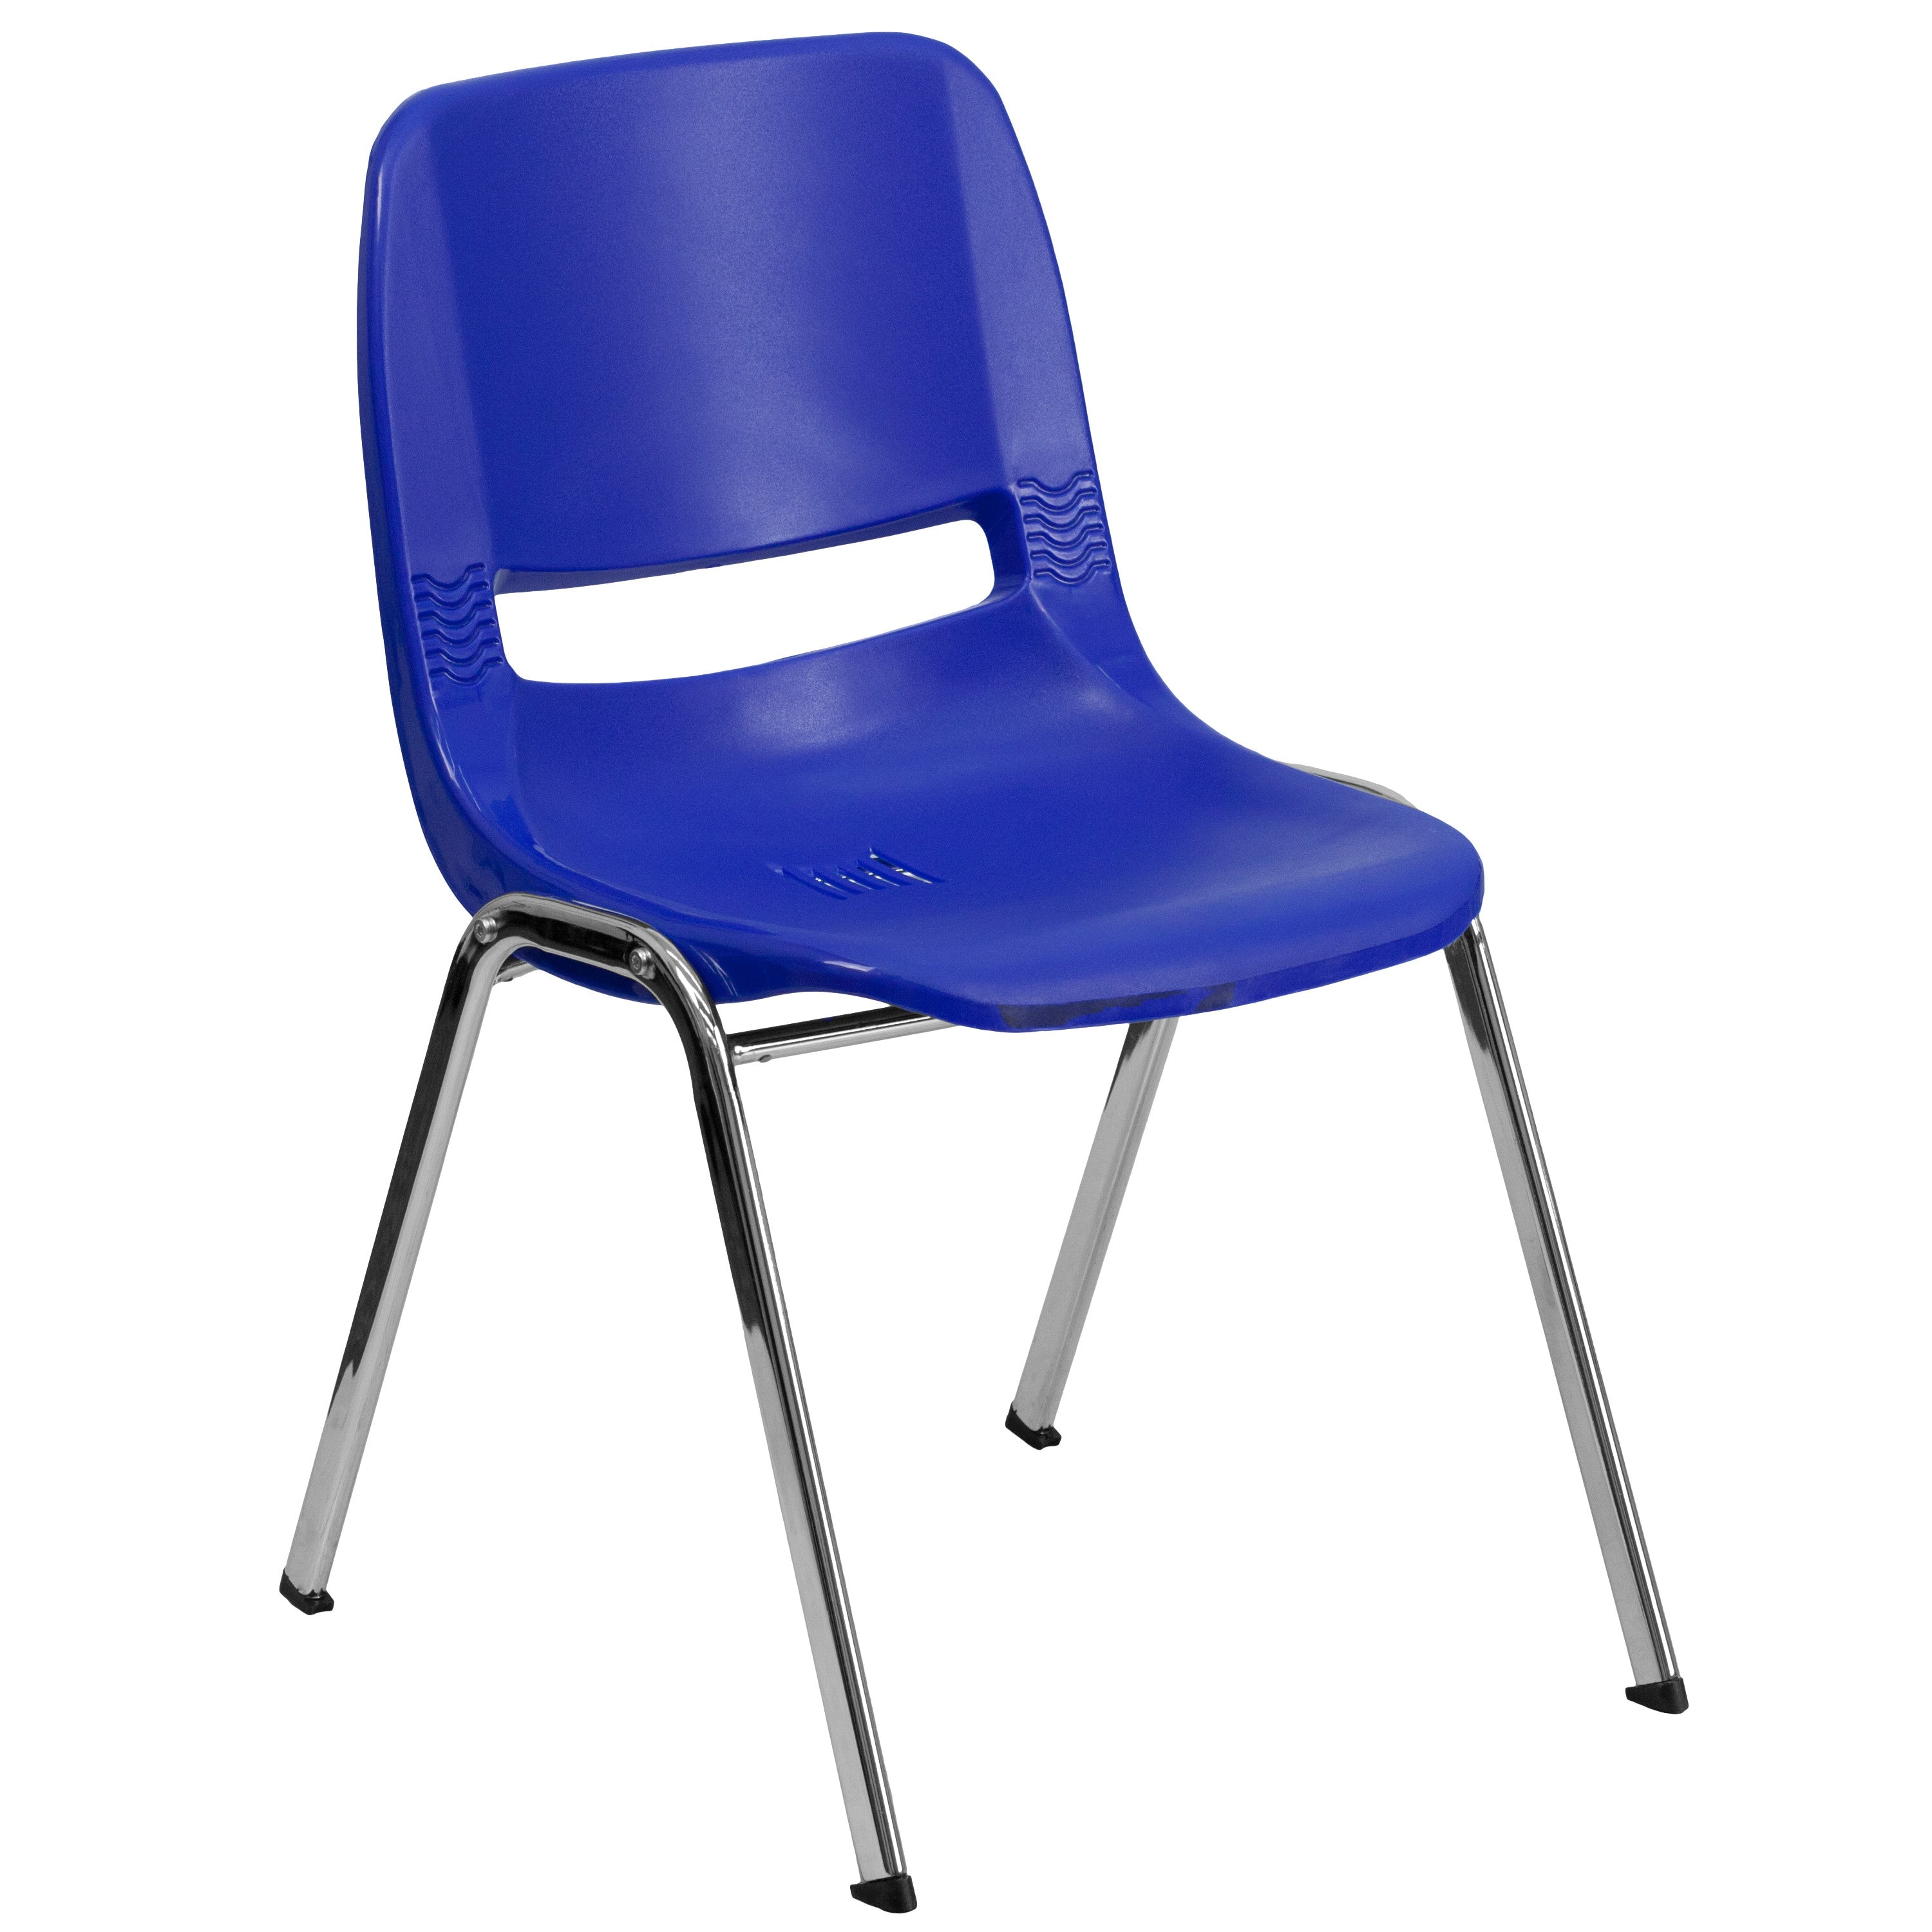 Classroom chairs stacked - We Consider This Student Stack Chair To Be The Premier Stack Chair Essential For Every